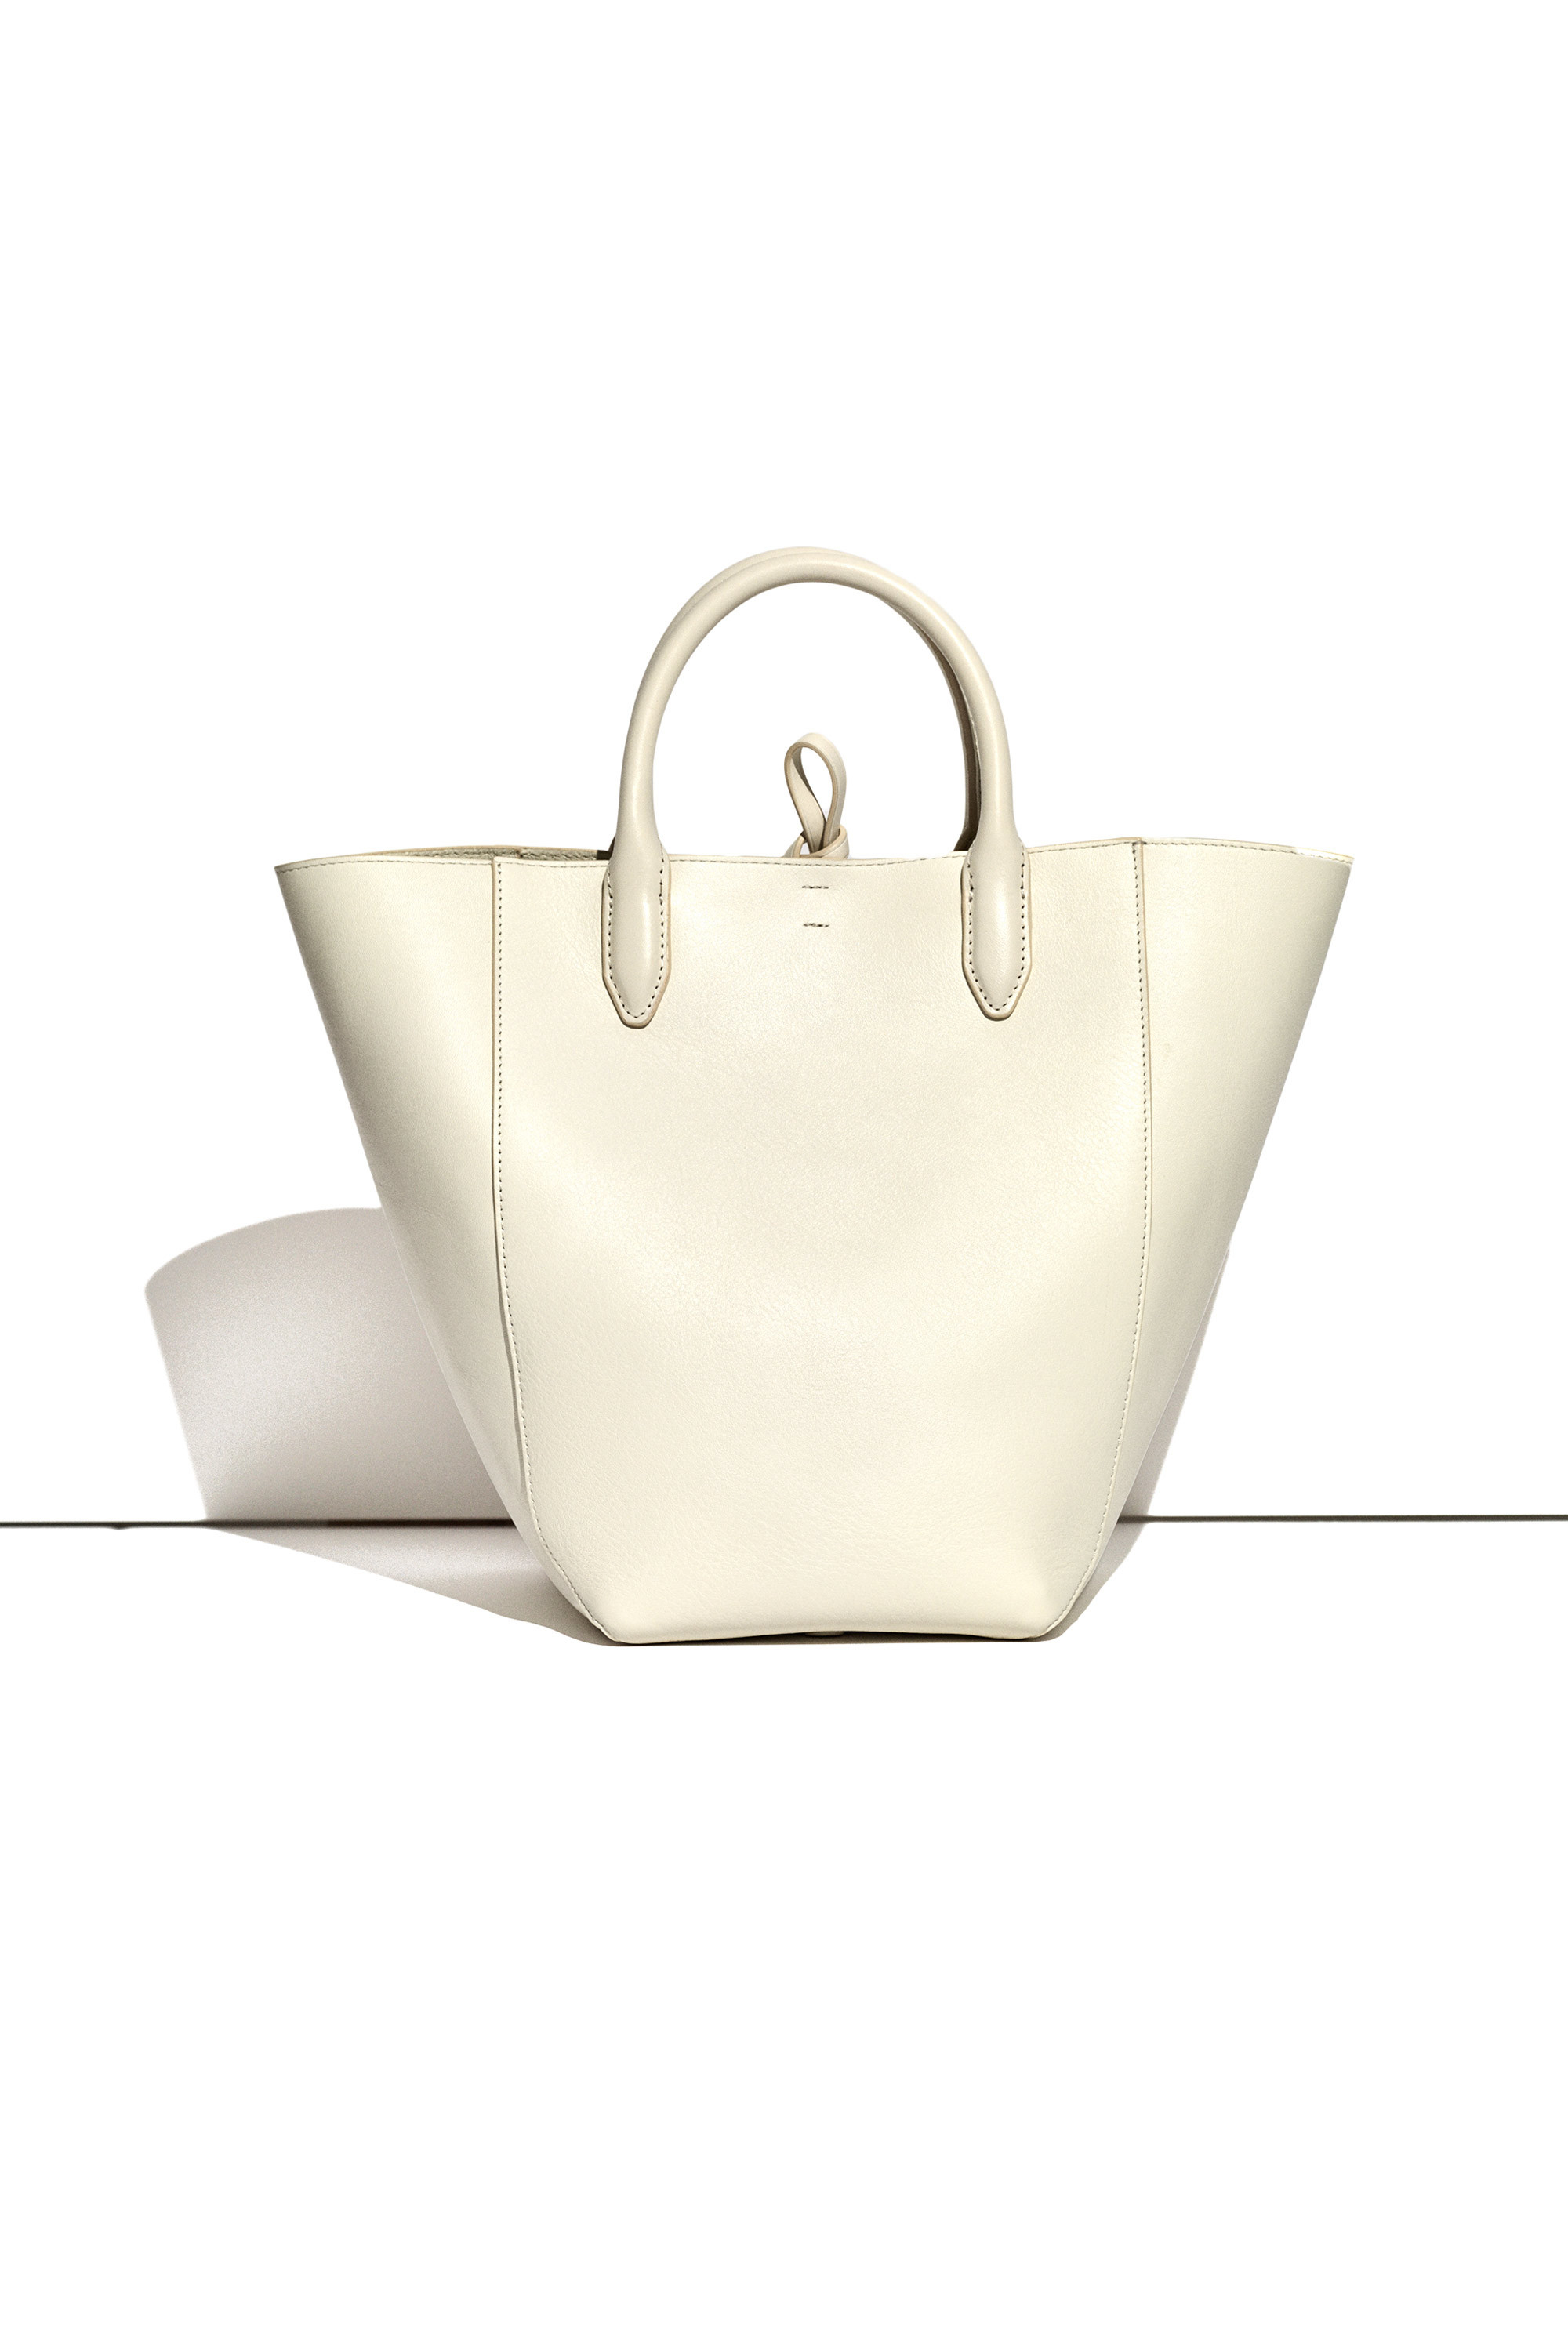 3.1 Phillip Lim Bianca Small Tote in White